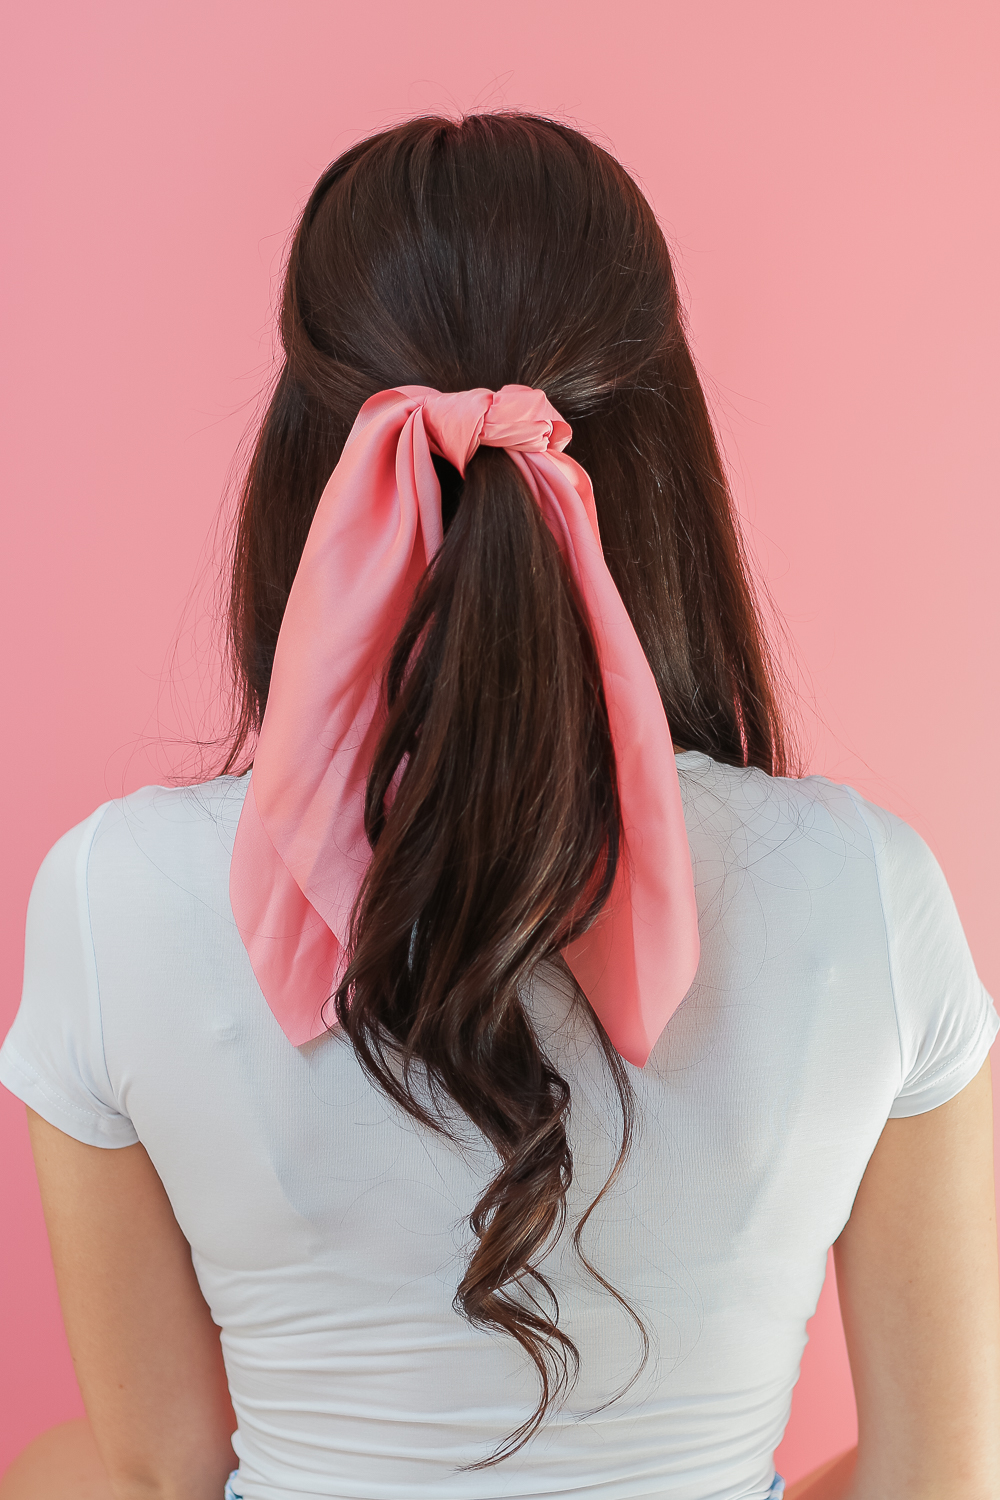 How to Wear Hair Scarves: 3 Easy-to-Wear Hairstyles + Fall Hair Refresh by popular beauty blogger Stephanie Ziajka on Diary of a Debutante, ways to wear hair scarves, how to wear a scarf in your hair, pink hair scarf, half up half down hair scarf hairstyle